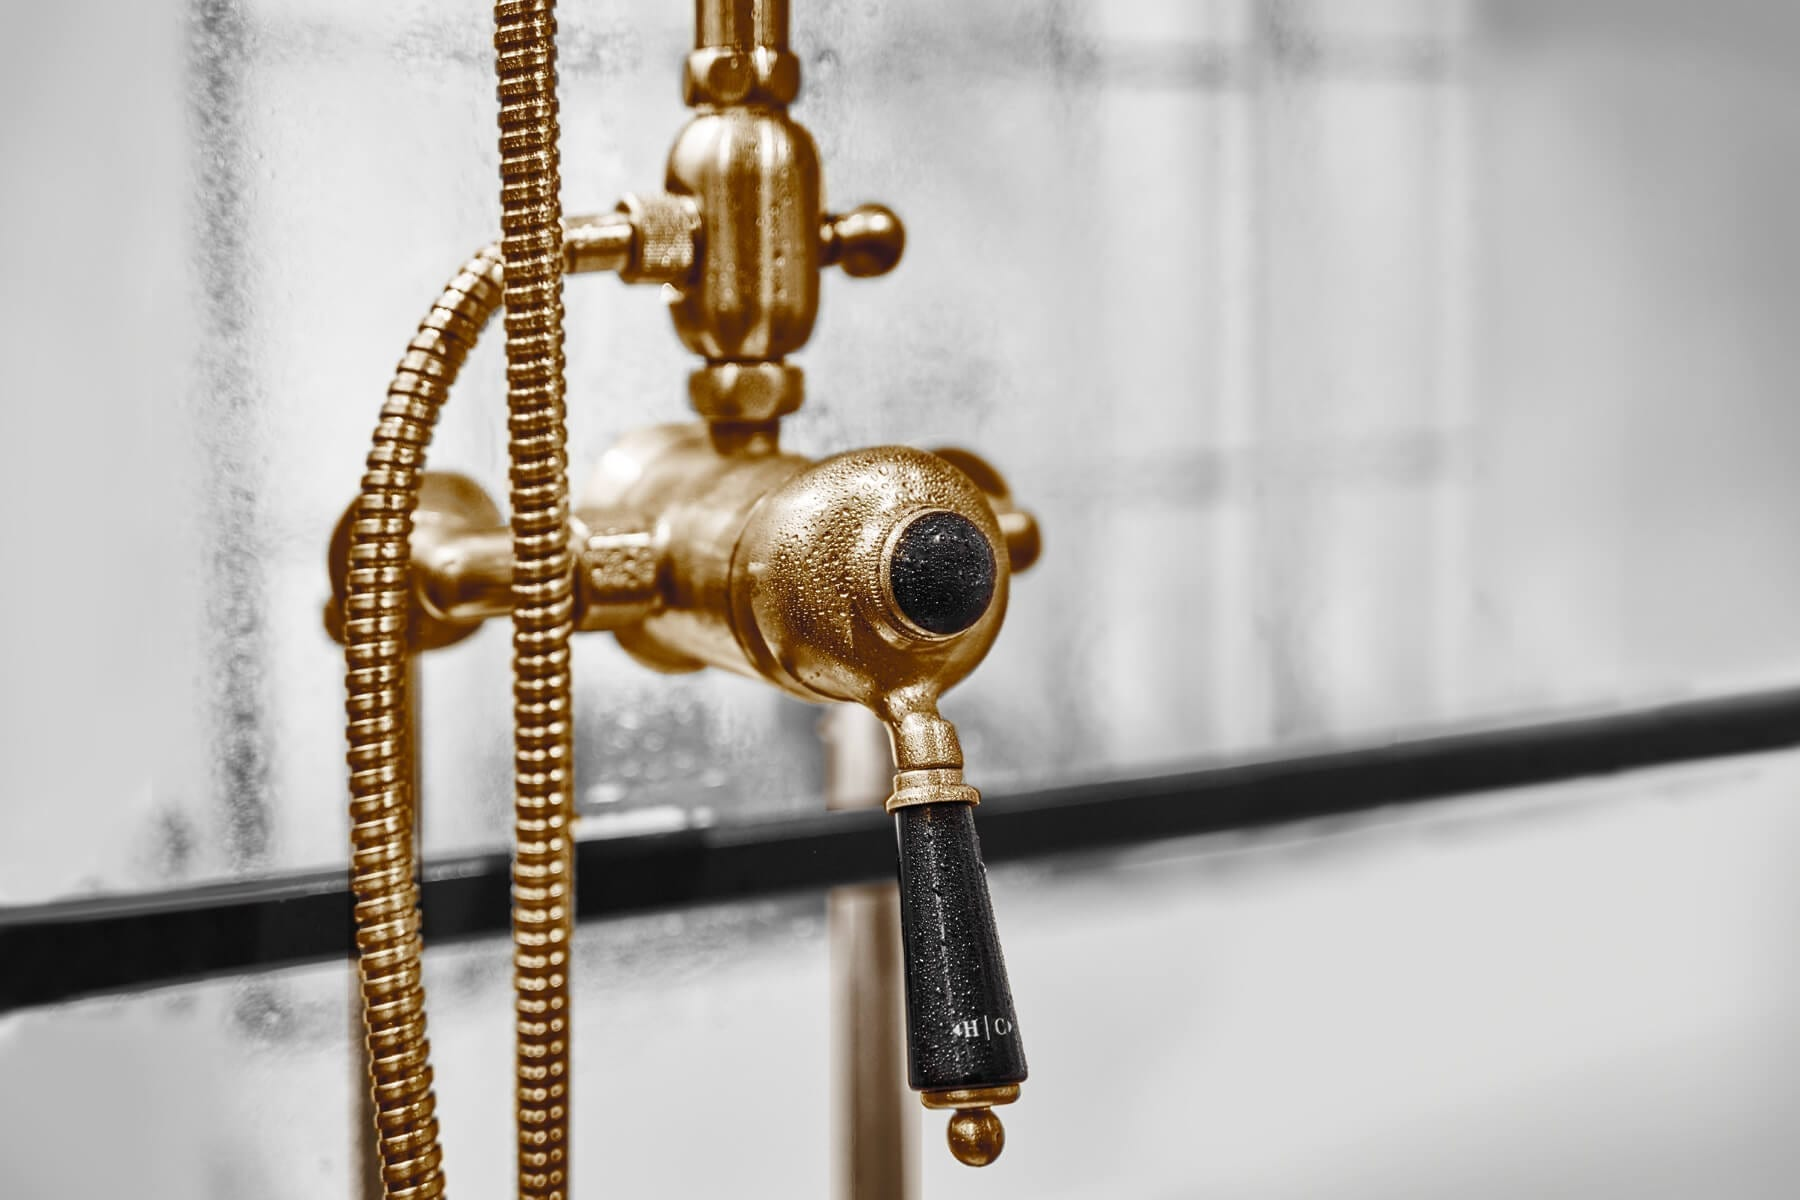 brushed brass shower mixer